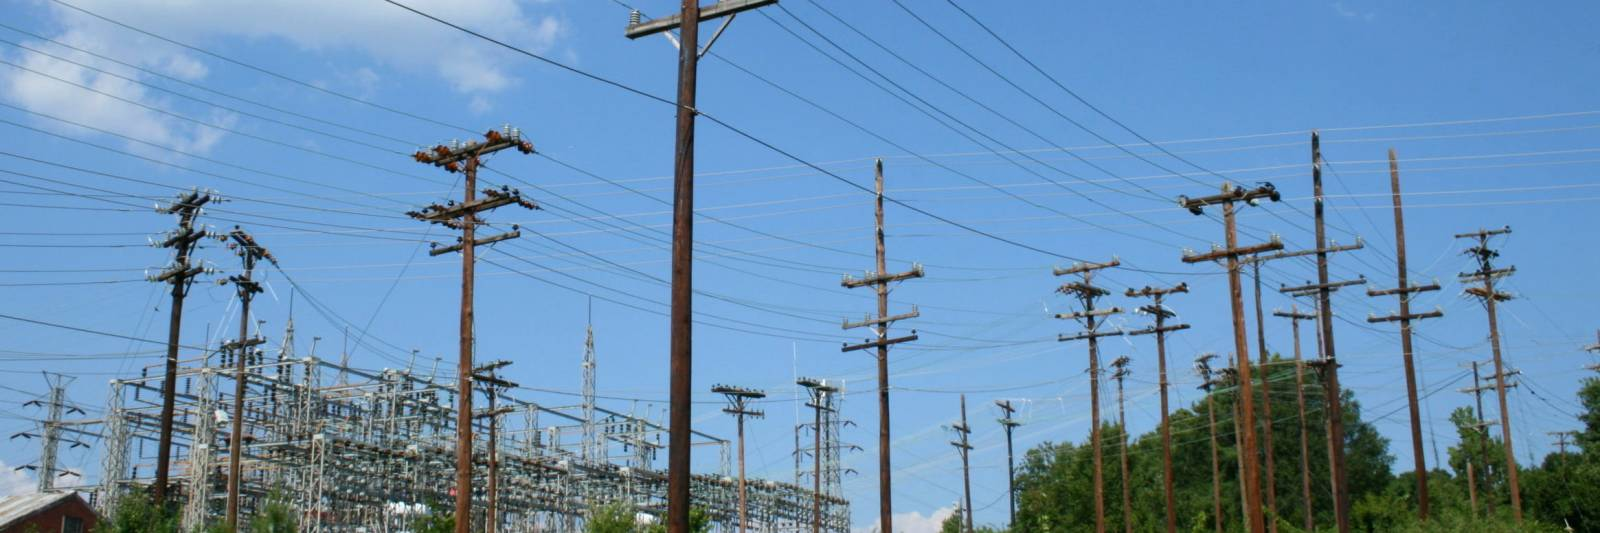 info sharing pact will help electric companies comply with doe's 100 day